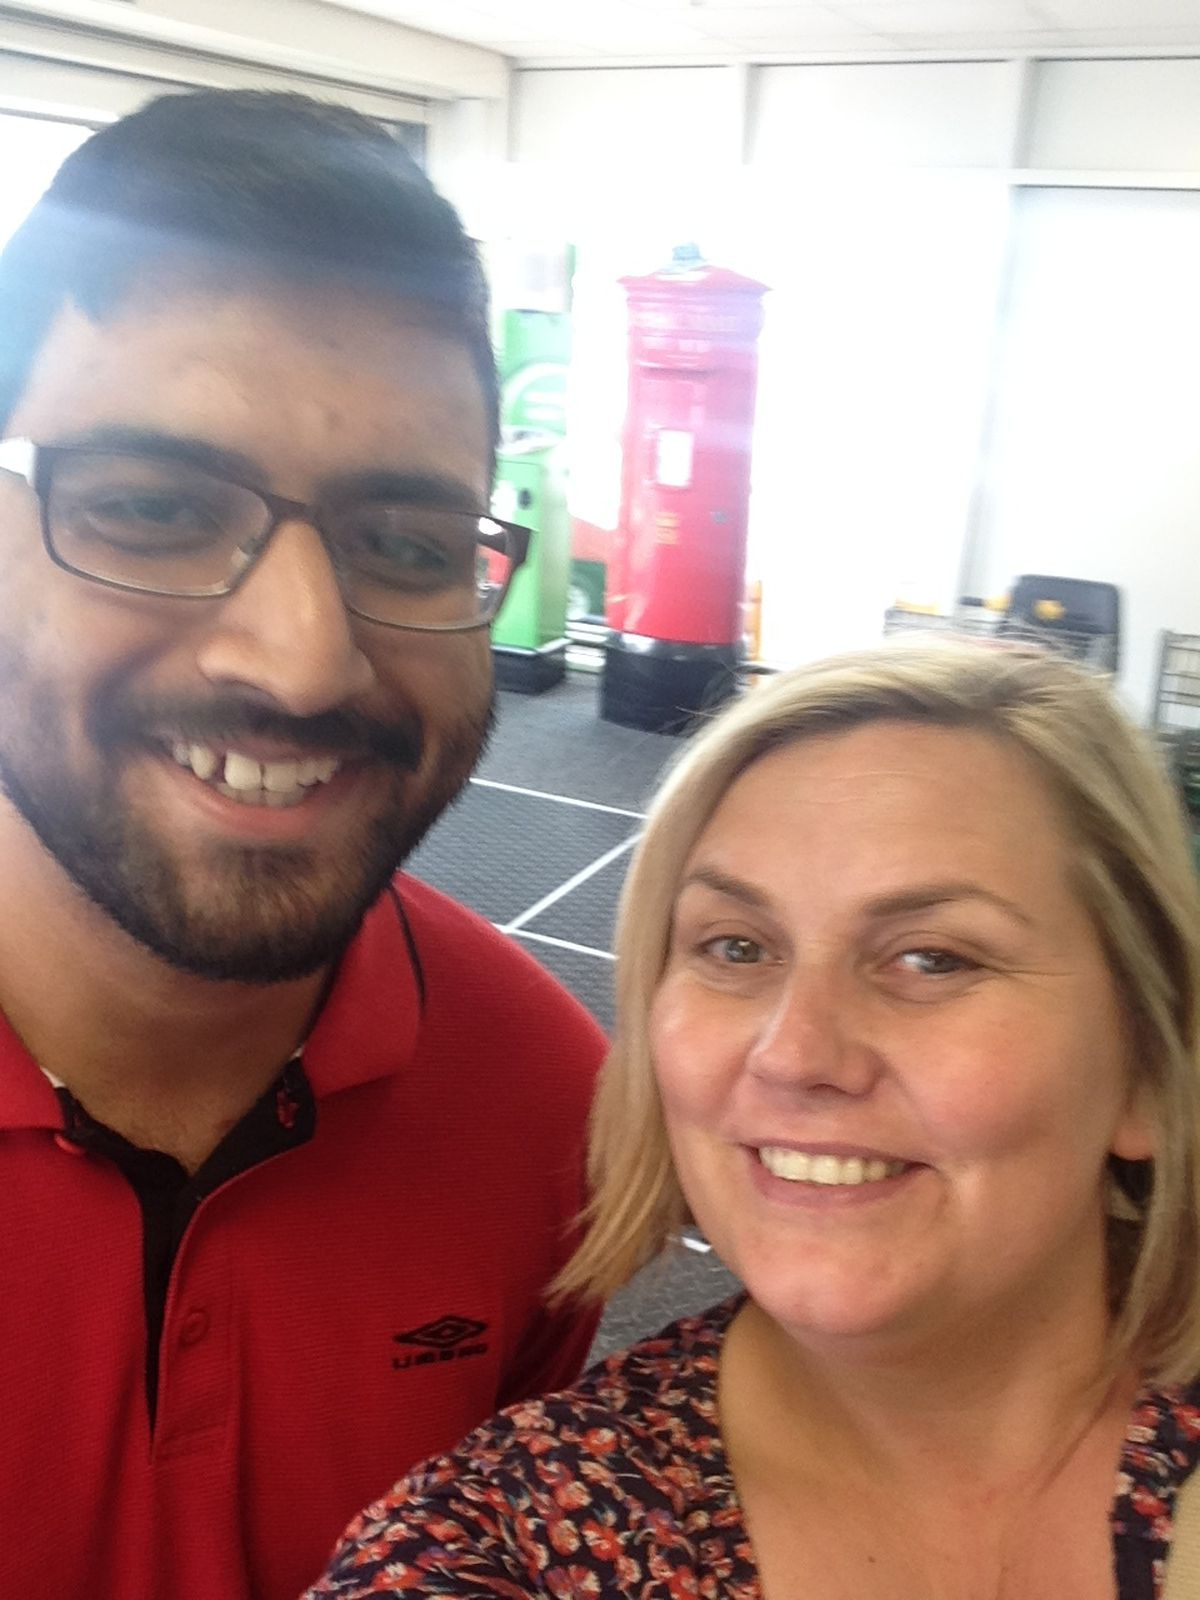 Lisa Potts when she bumped into Ahmed Malik in the supermarket, 20 years after she saved his life